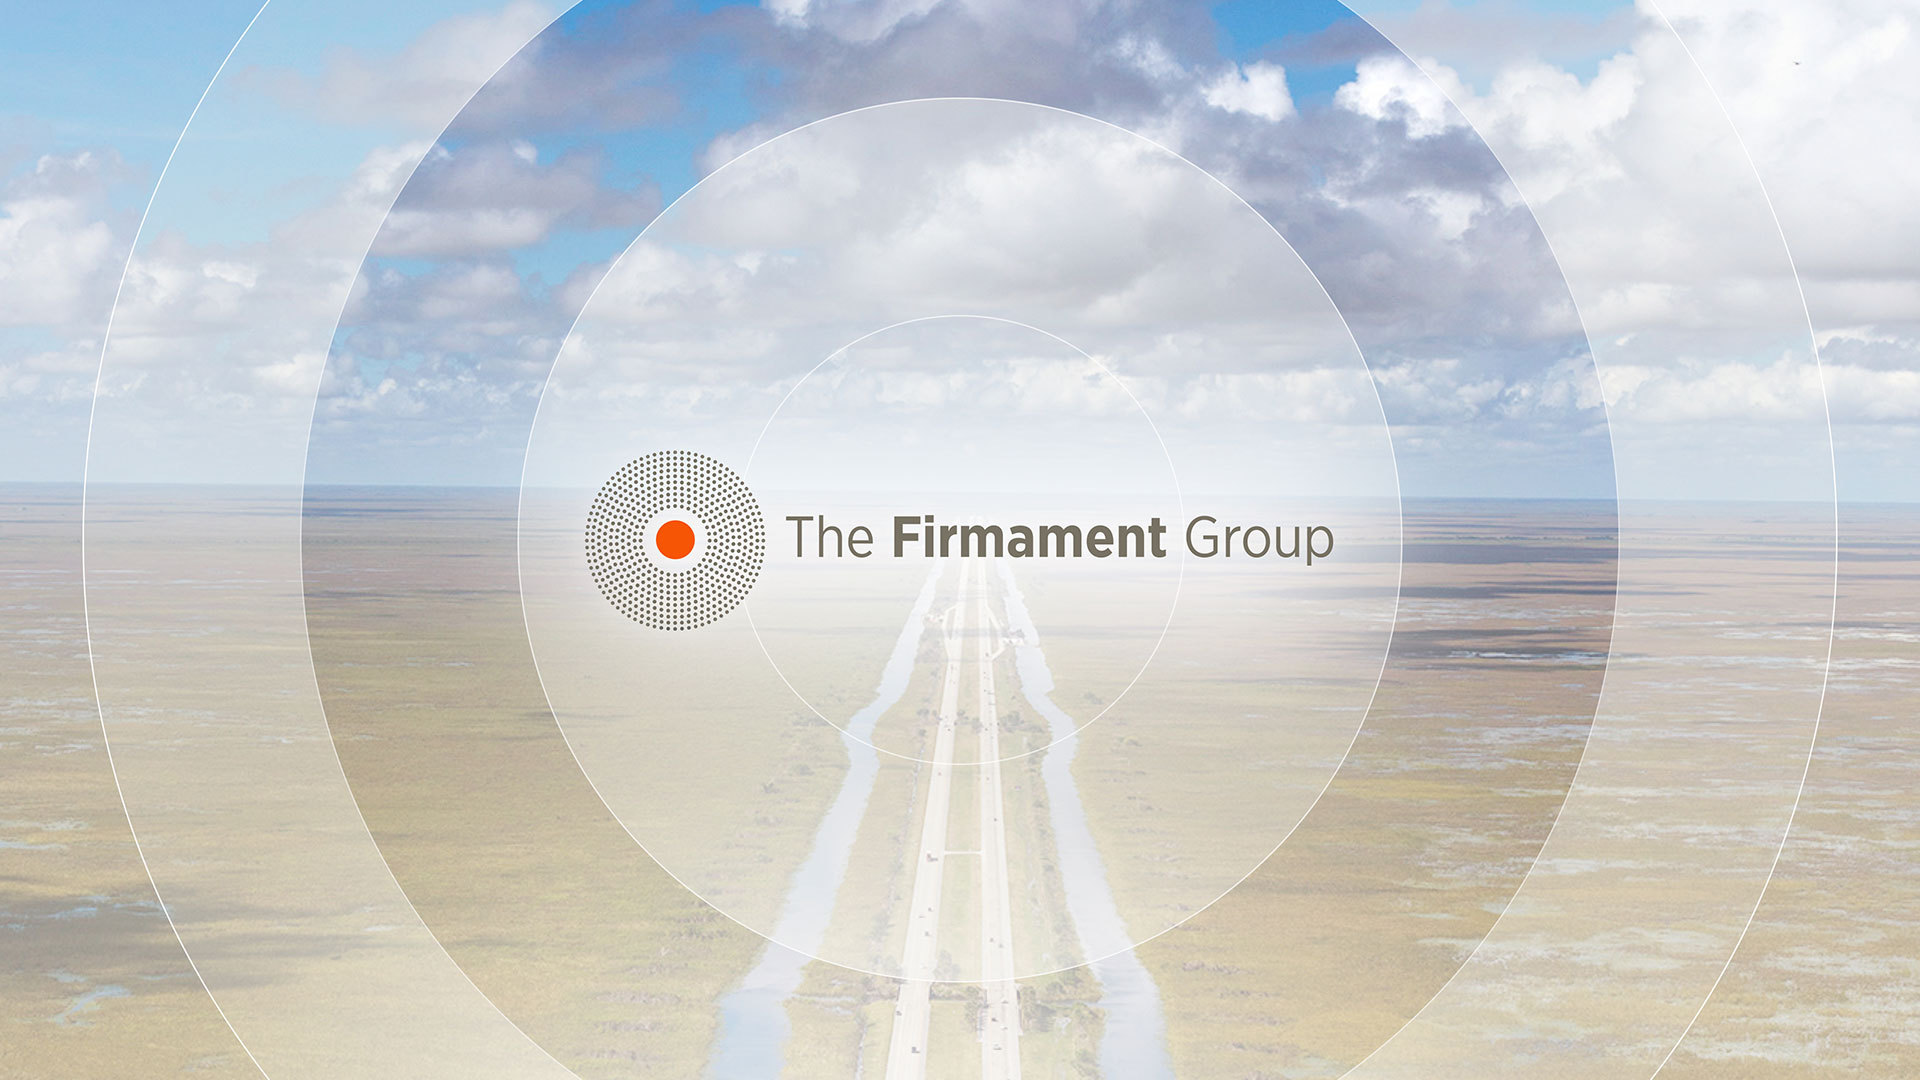 The Firmament Group Website Design Preview